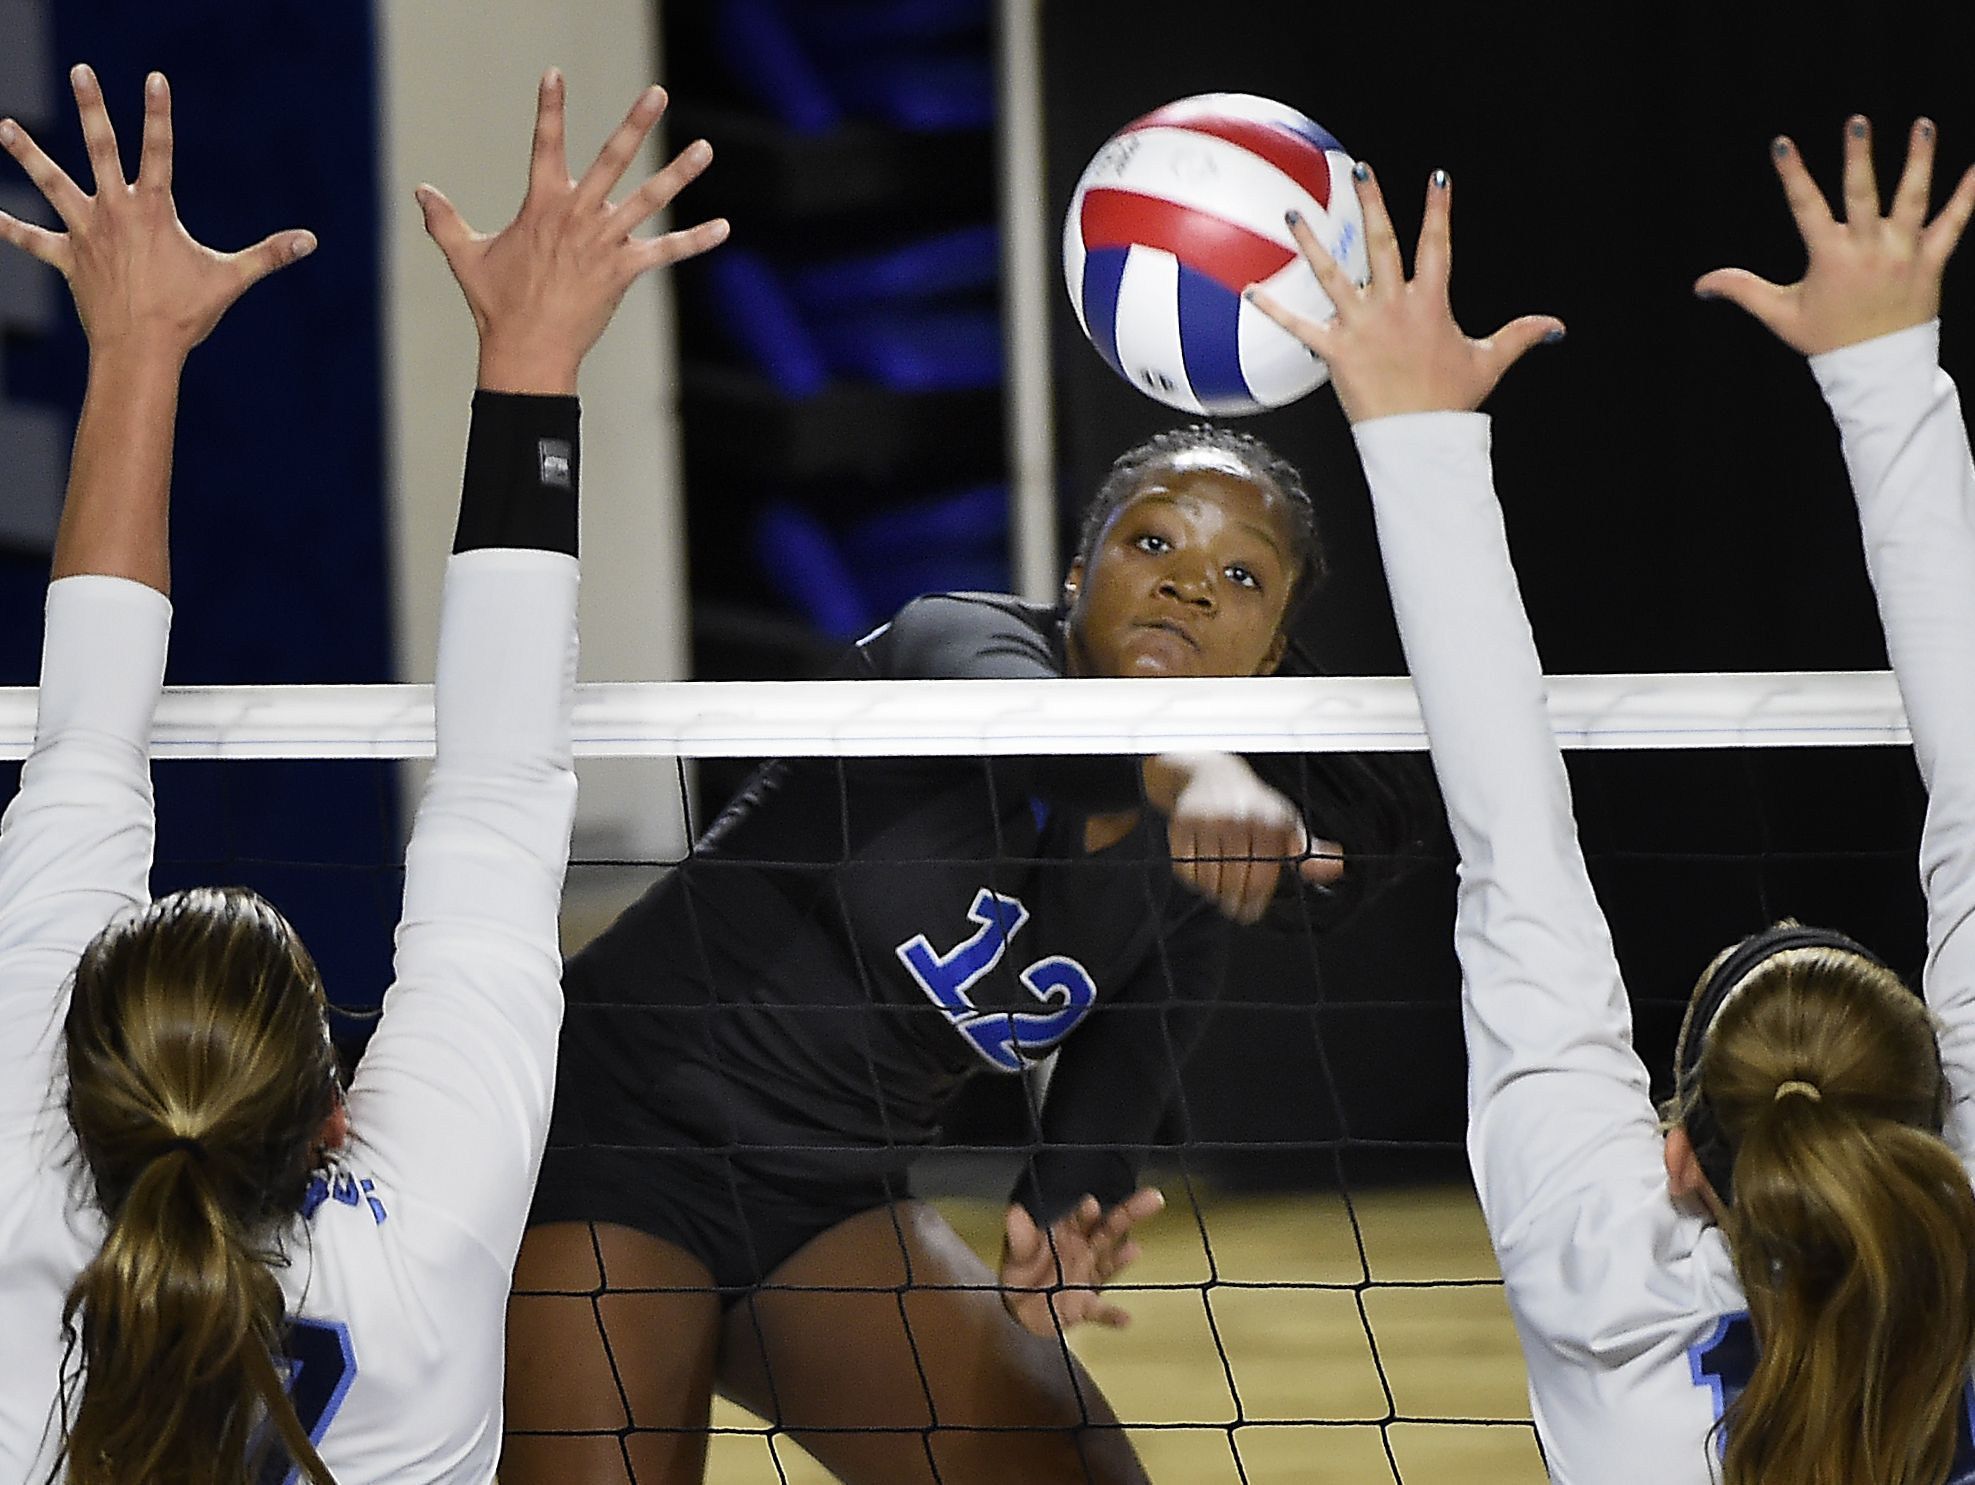 Kamryn Carter (12) drills a shot between two defenders as Brentwood plays Hardin Valley at MTSU's Murphy Center during the TSSAA volleyball state tournament on Oct. 20, 2016.